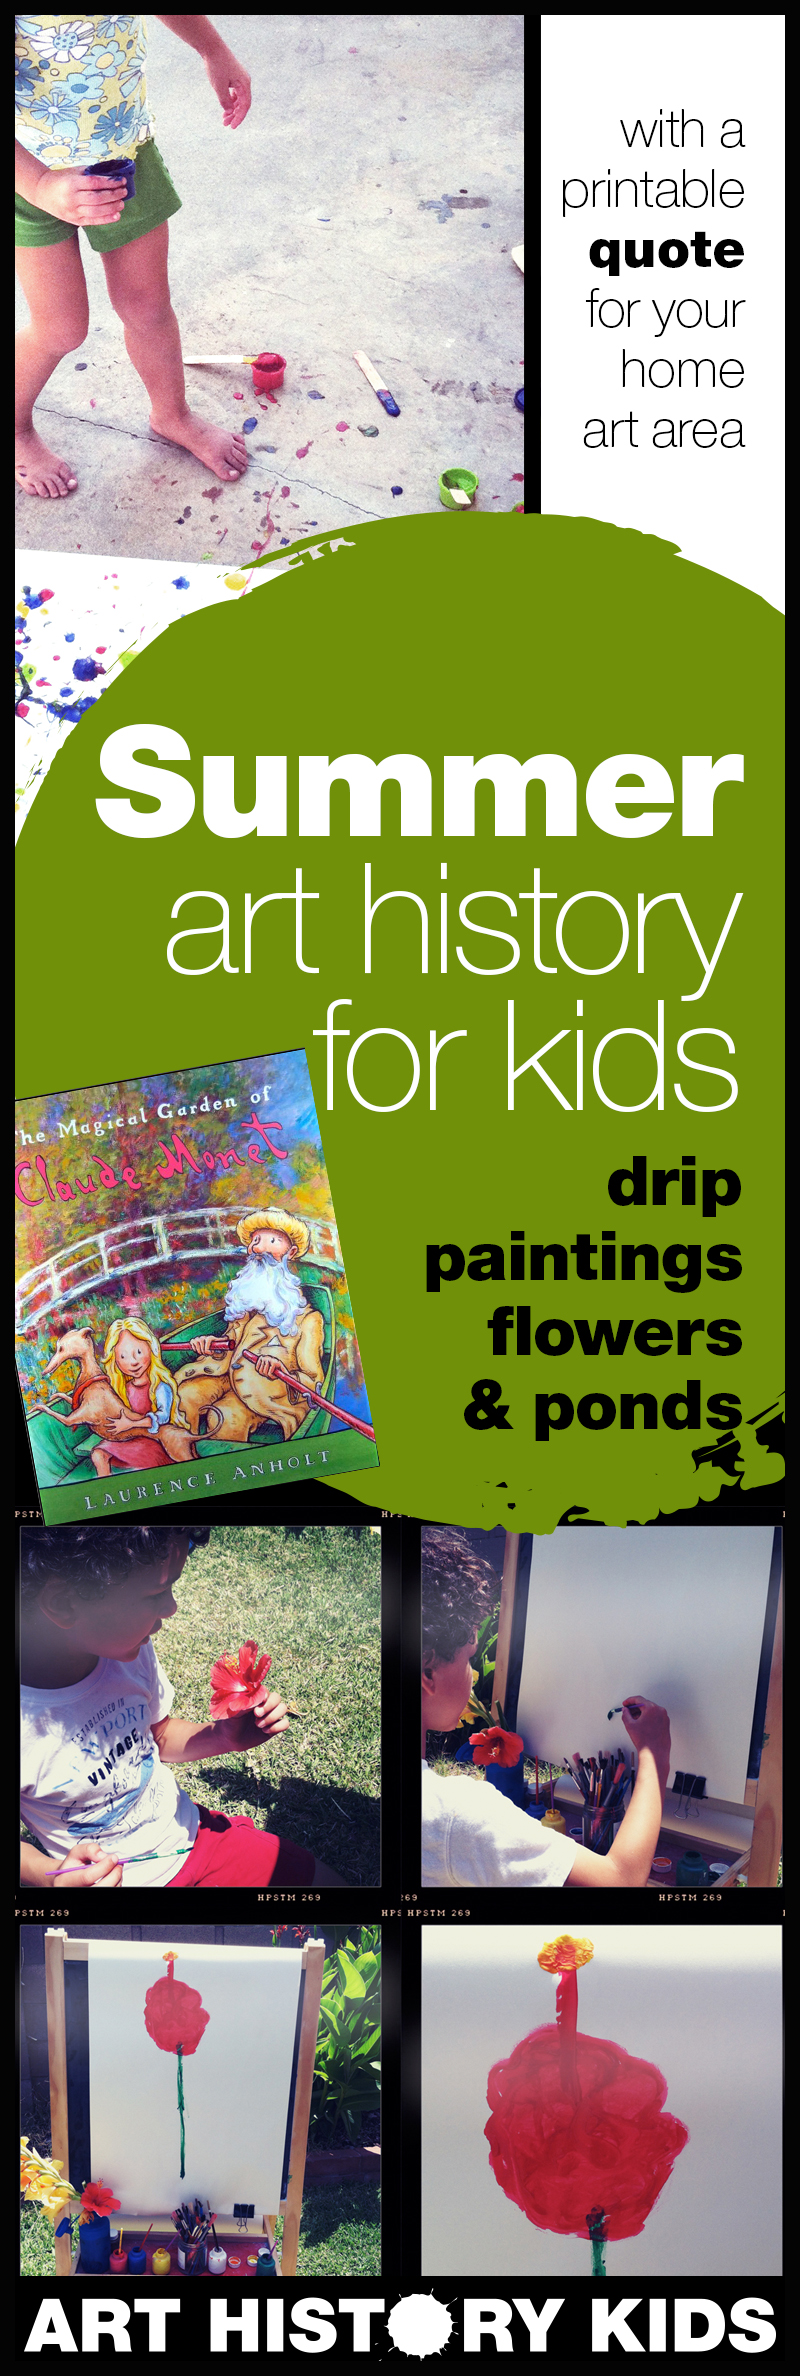 Fill your summer with fun art history projects that your kids will LOVE! Try drip painting, explore a water garden, and take a closer look at some flowers!